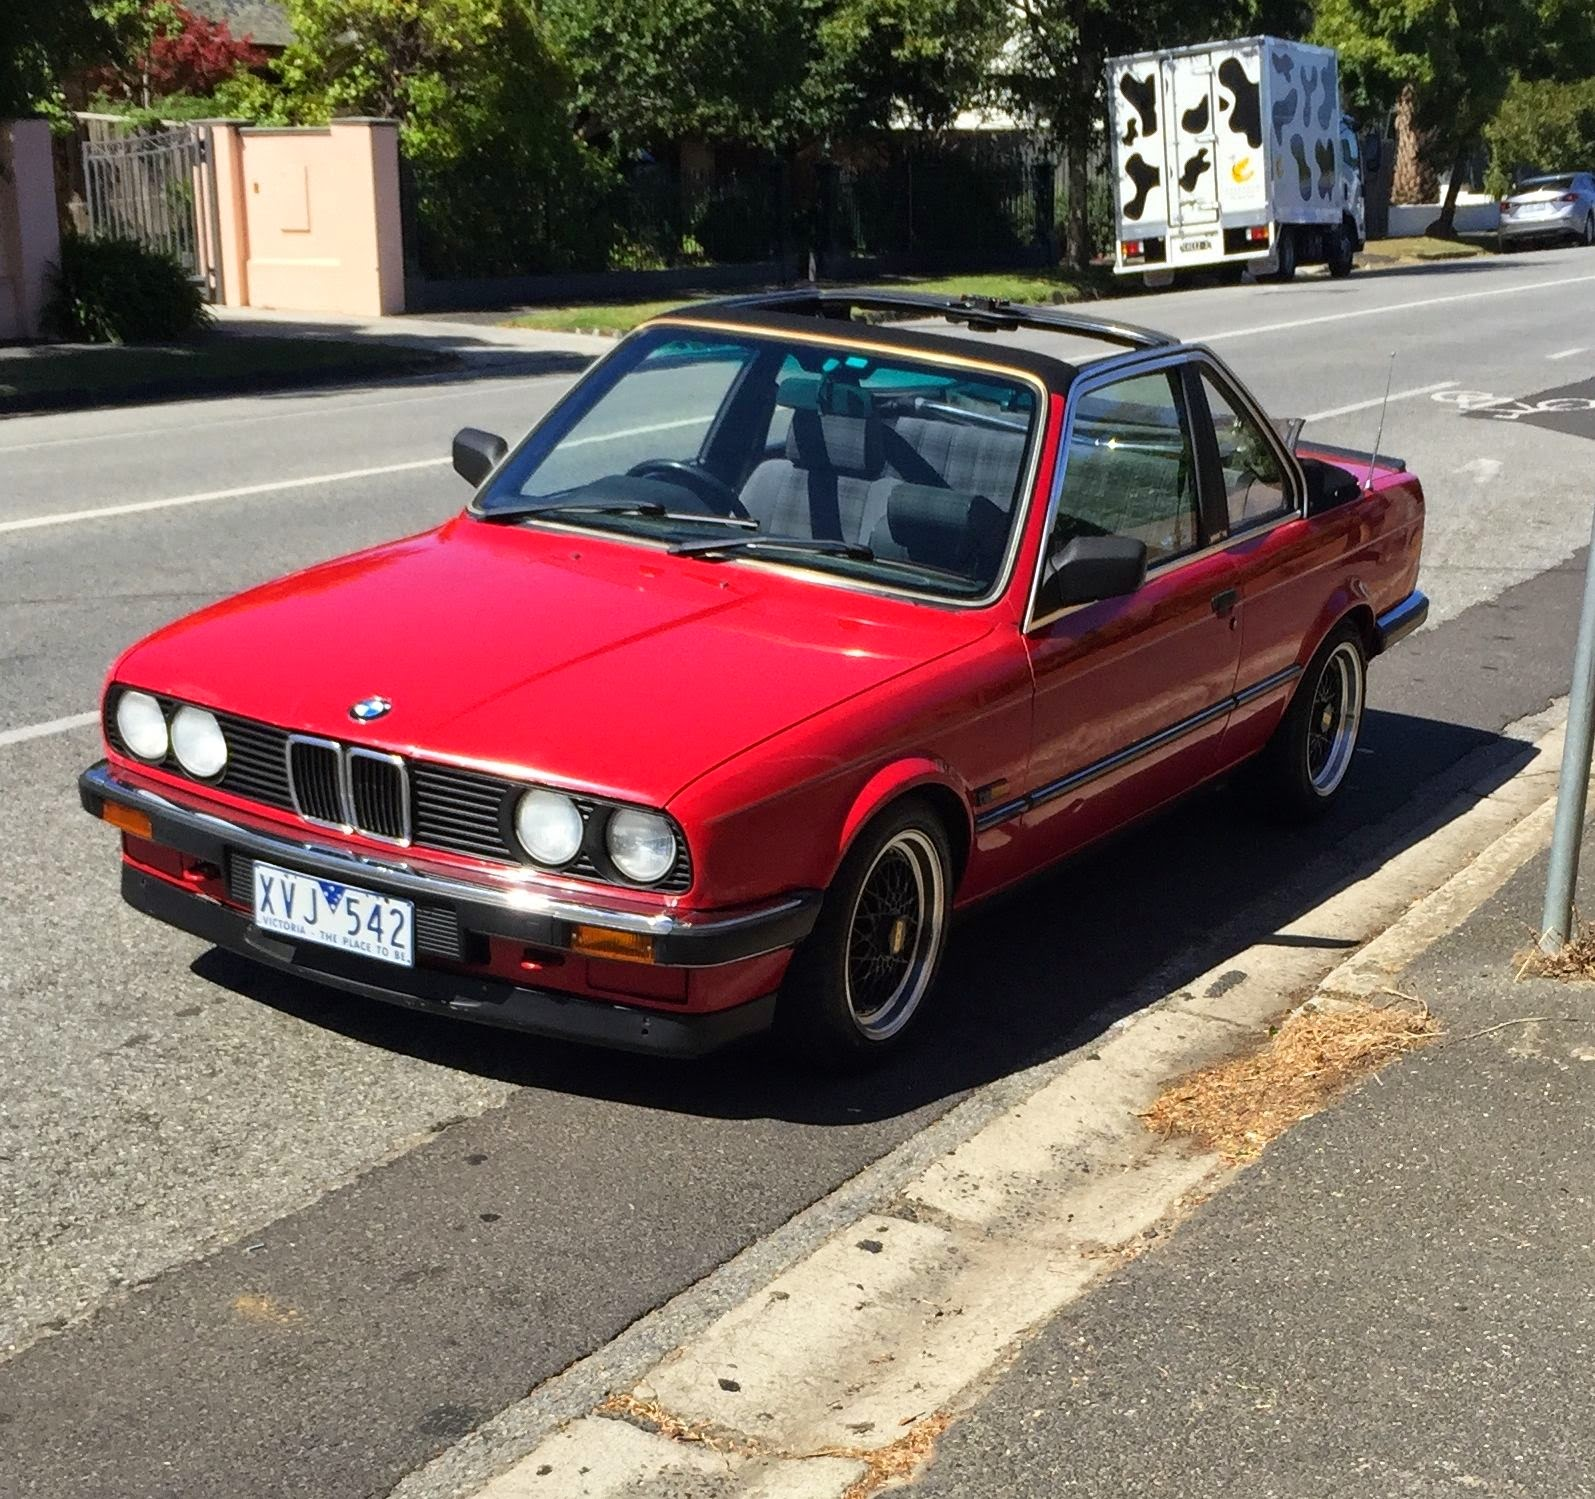 medium resolution of baurspotting 1985 bmw e30 318i tc baur manual for sale in australia rh baurspotting blogspot com 1984 bmw 318i interior 1984 bmw 318i engine diagram